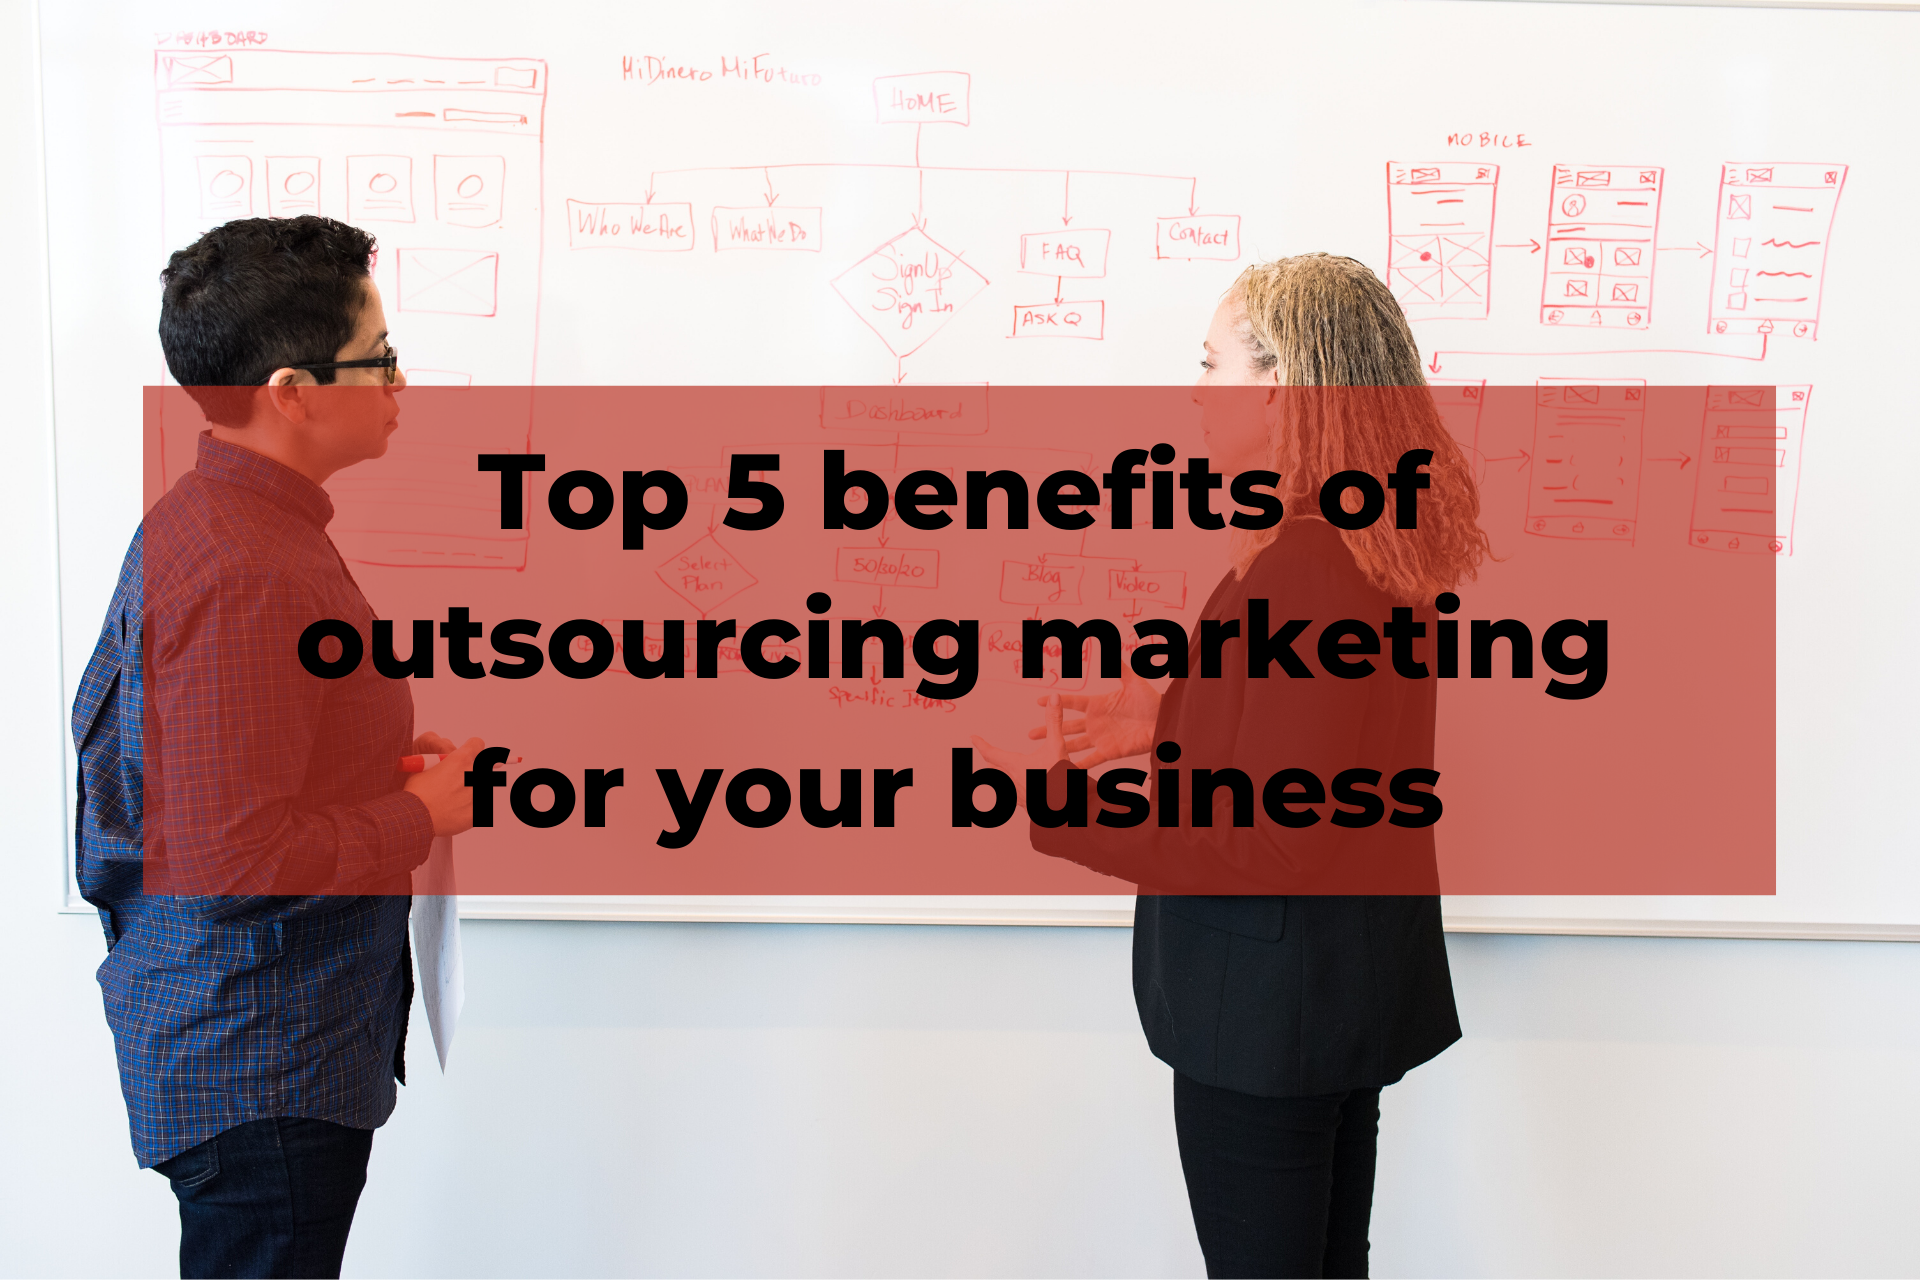 Top 5 benefits of outsourcing marketing for your business